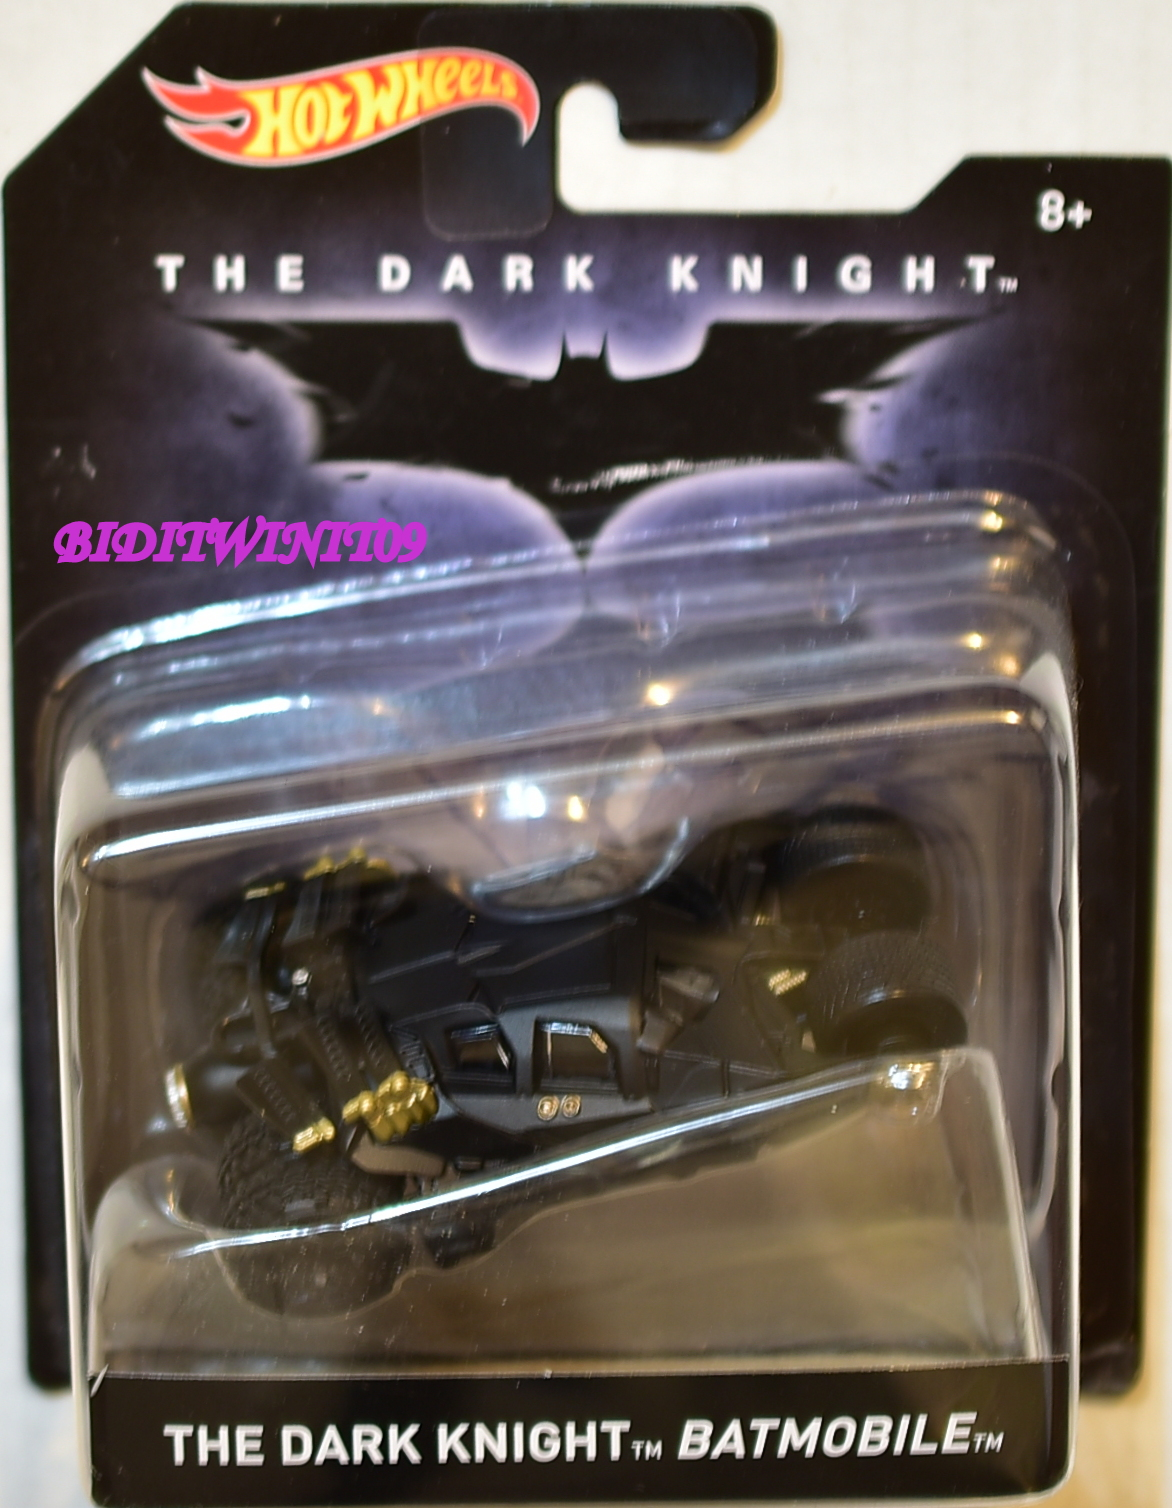 HOT WHEELS BATMAN 2016 THE DARK KNIGHT BATMOBILE SCALE 1:50